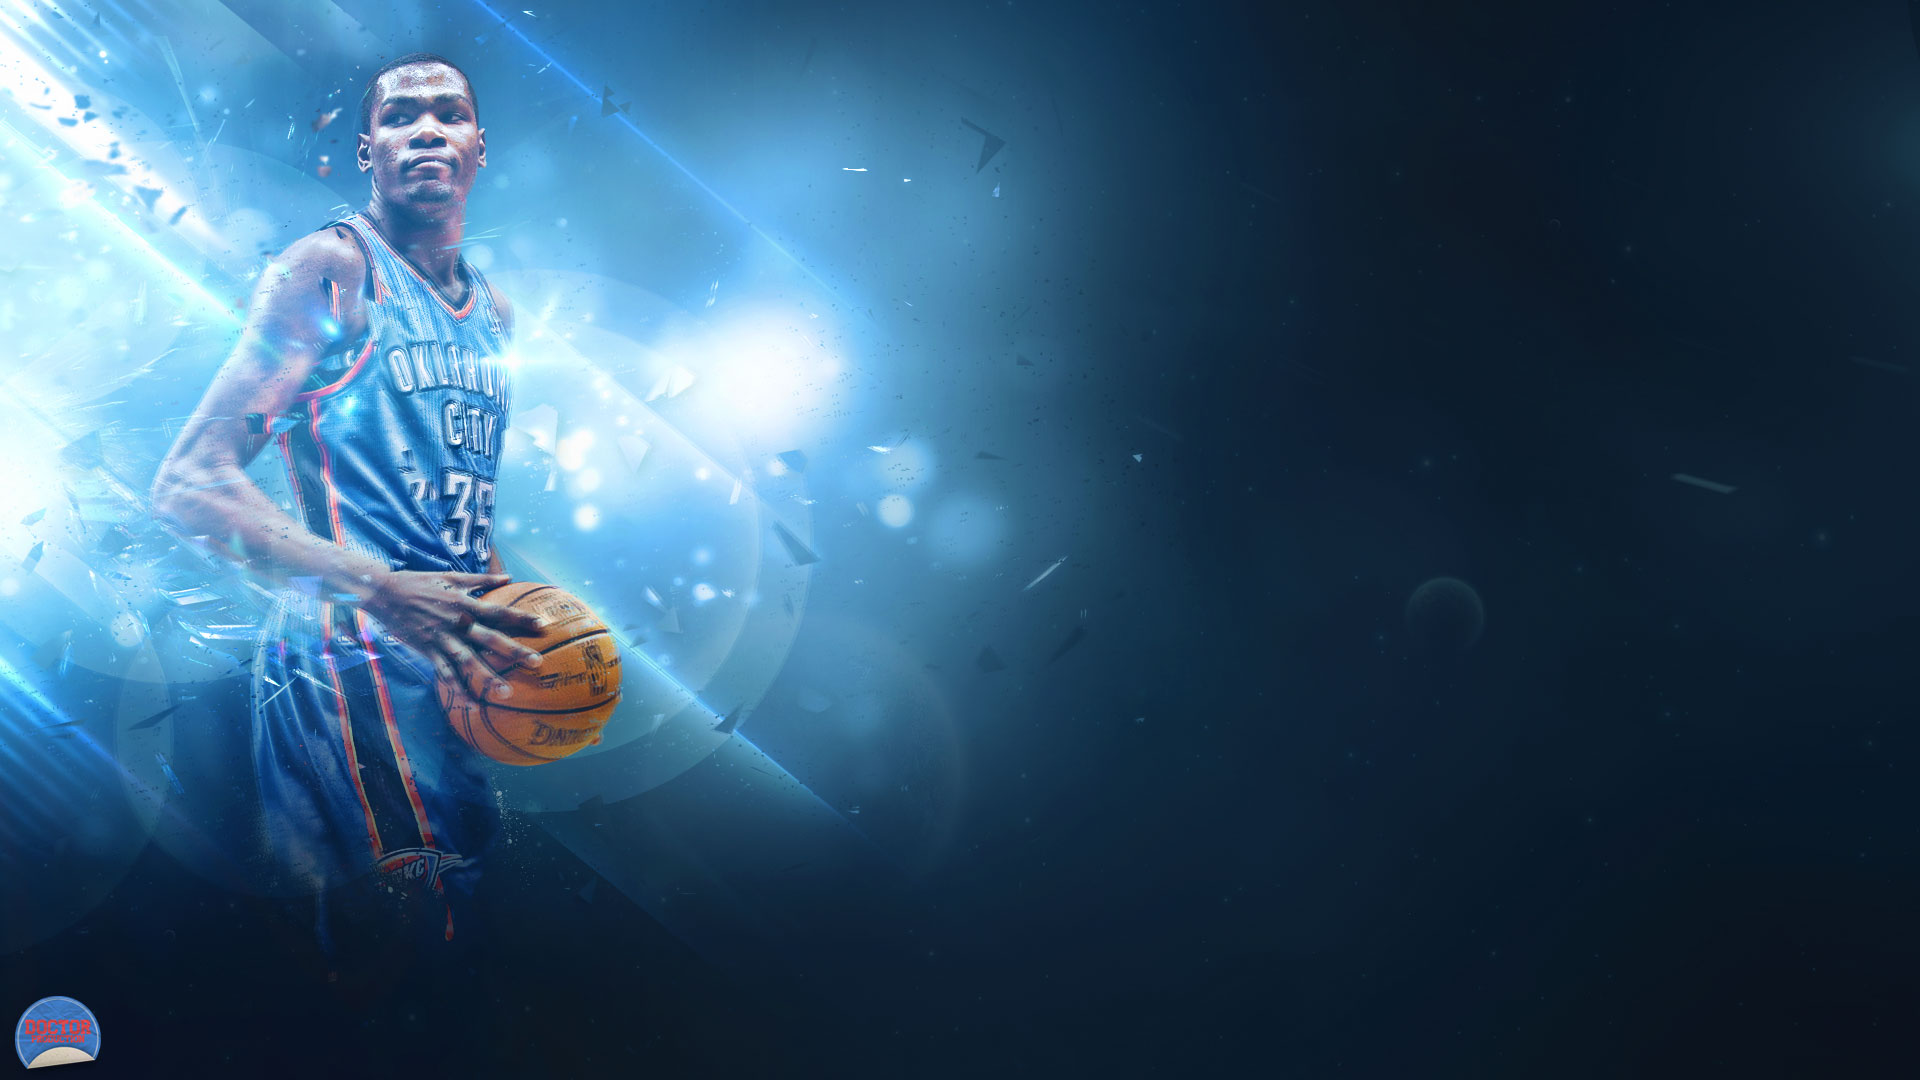 Kevin Durant HD Wallpaper | Background Image | 1920x1080 | ID:697968 - Wallpaper Abyss